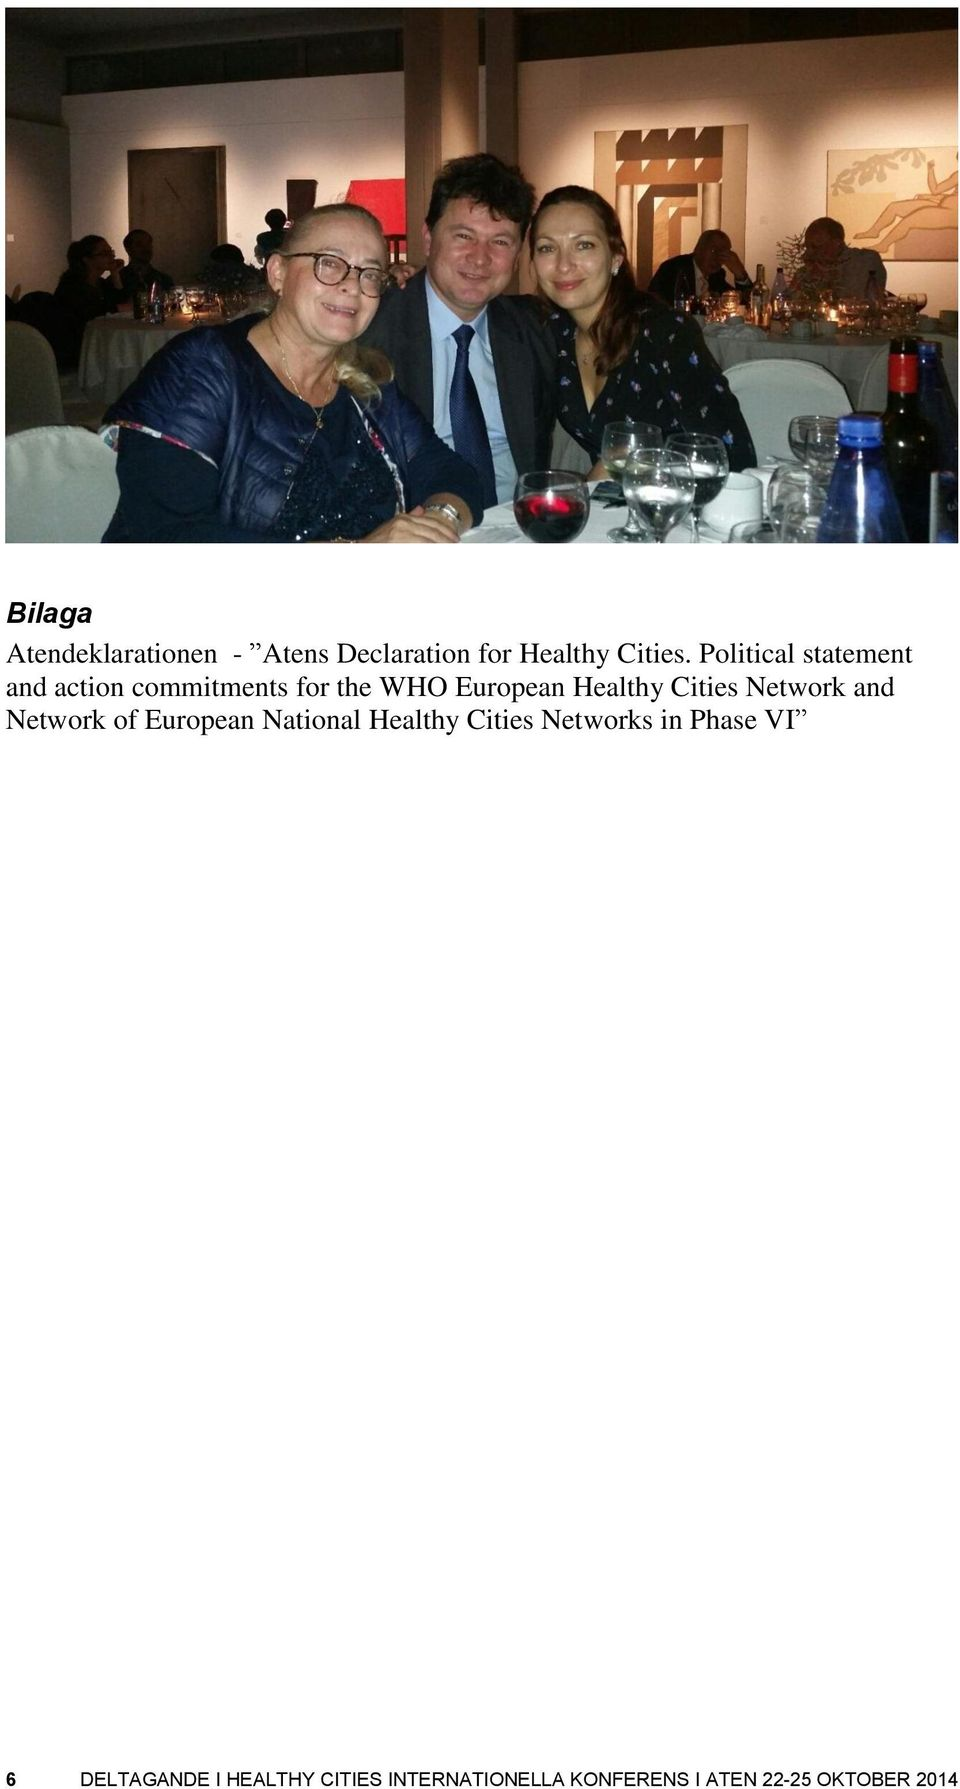 Cities Network and Network of European National Healthy Cities Networks in